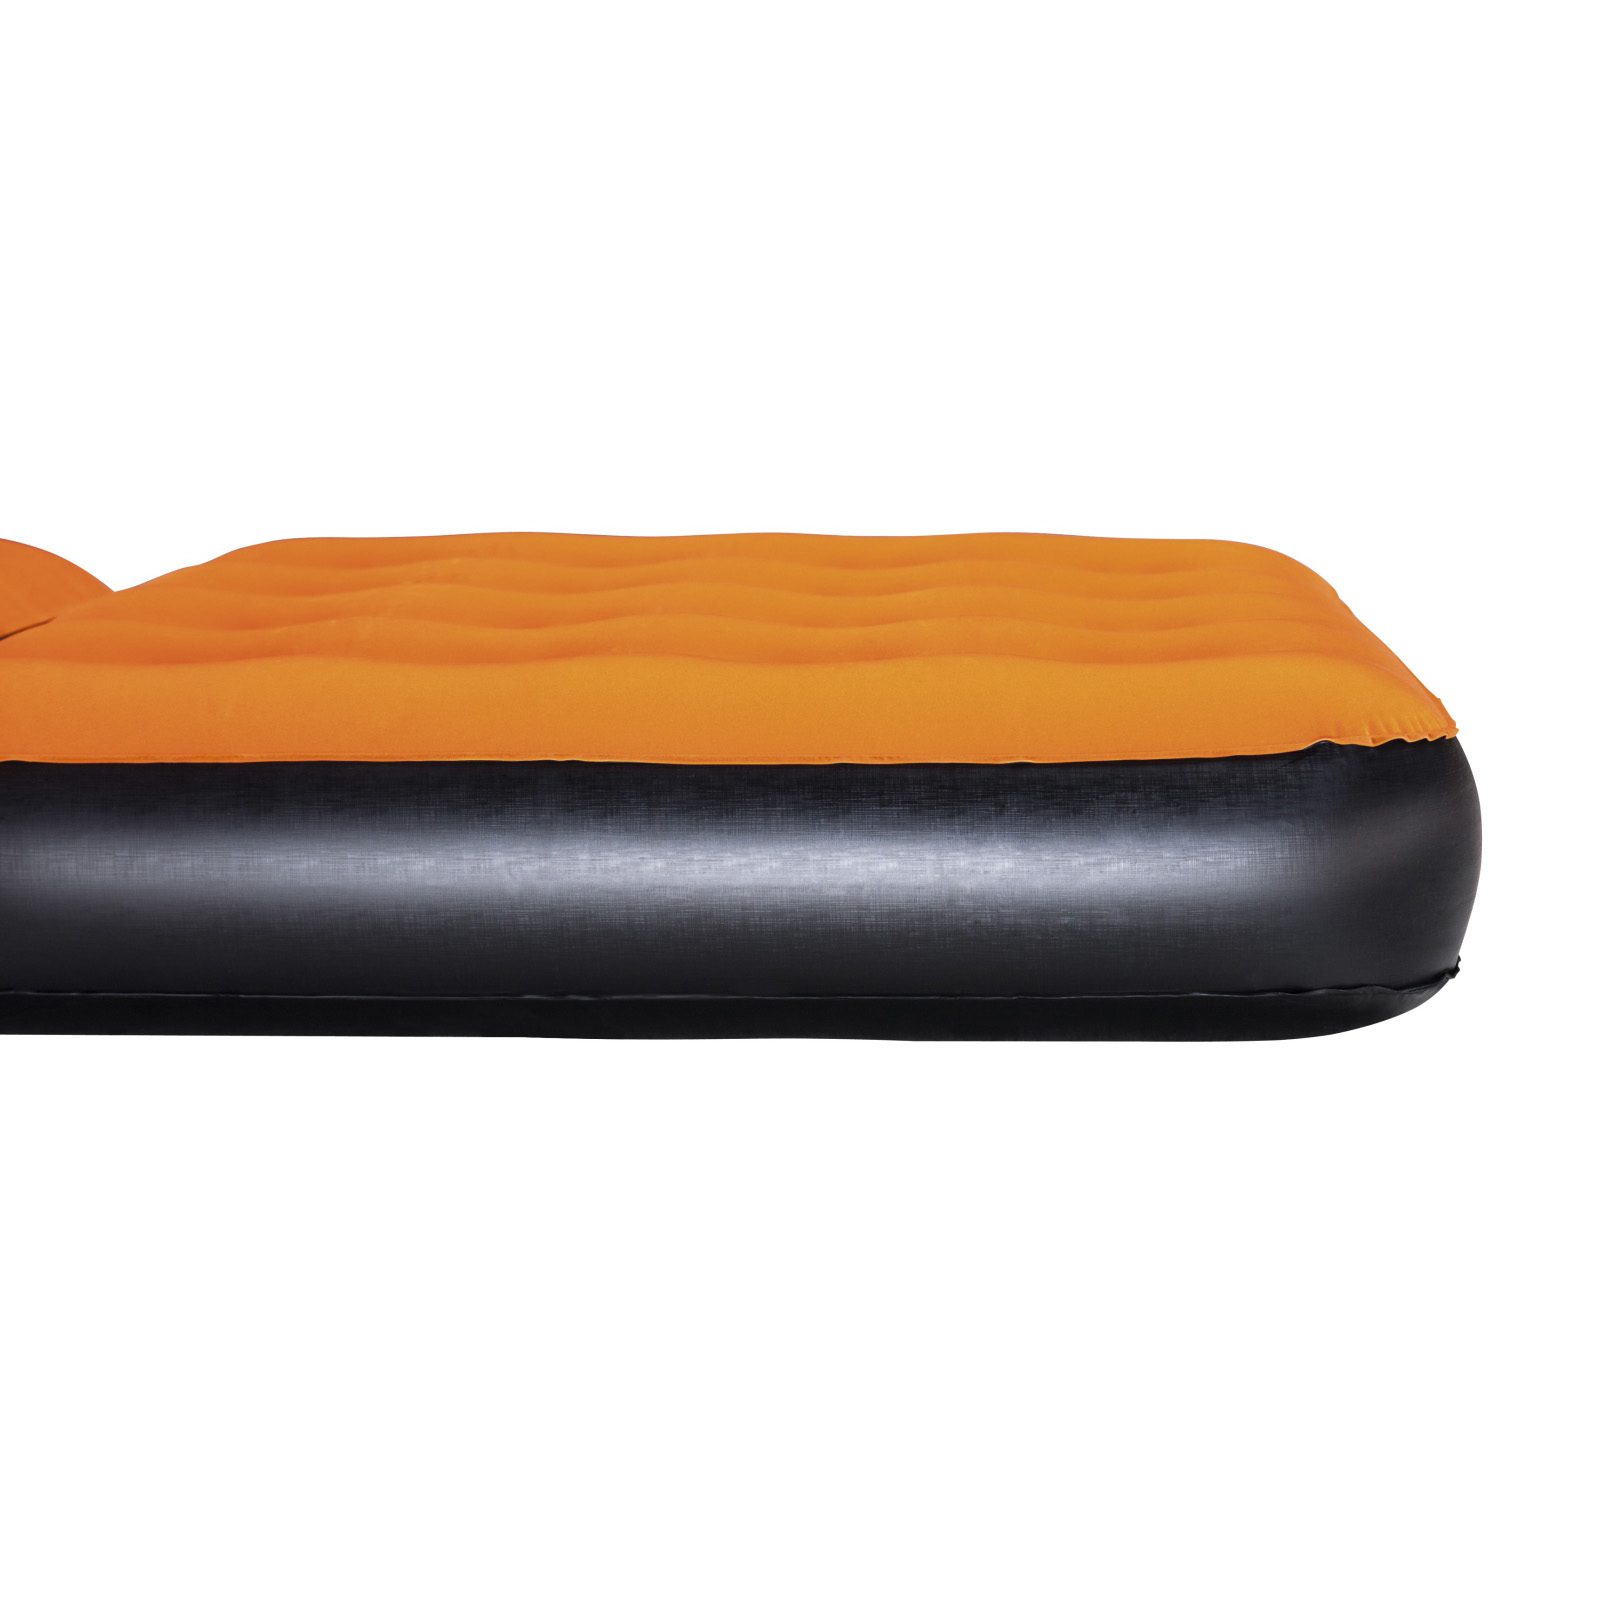 Bestway Air Couch Air Sofa Bed Inflatable Mattresses